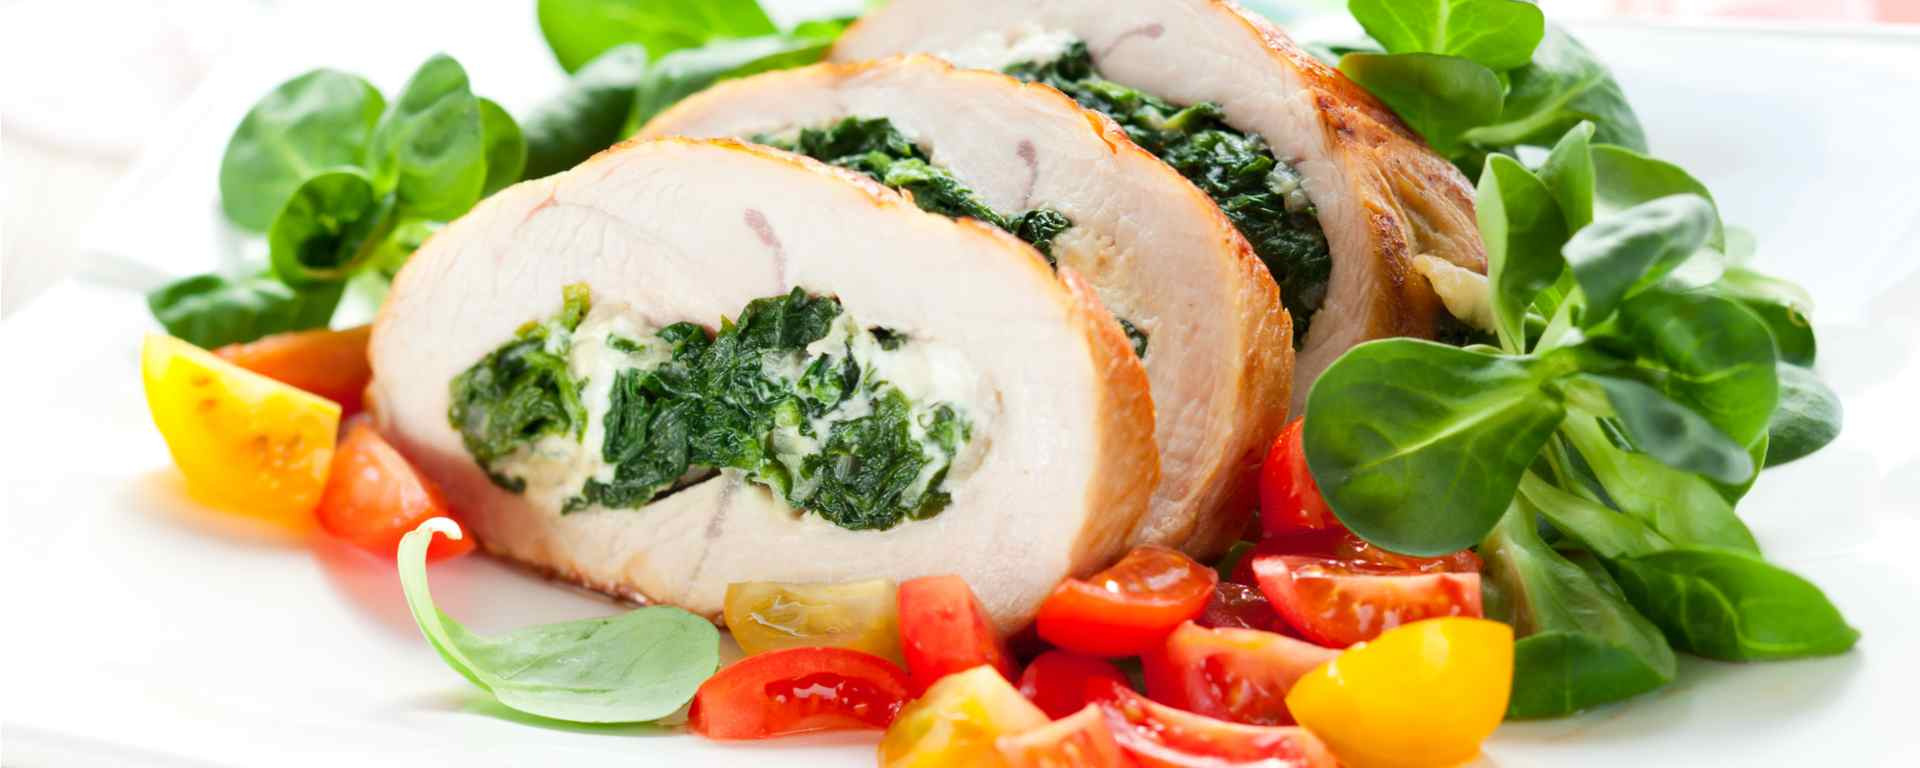 Photo for - Stuffed Turkey Breast